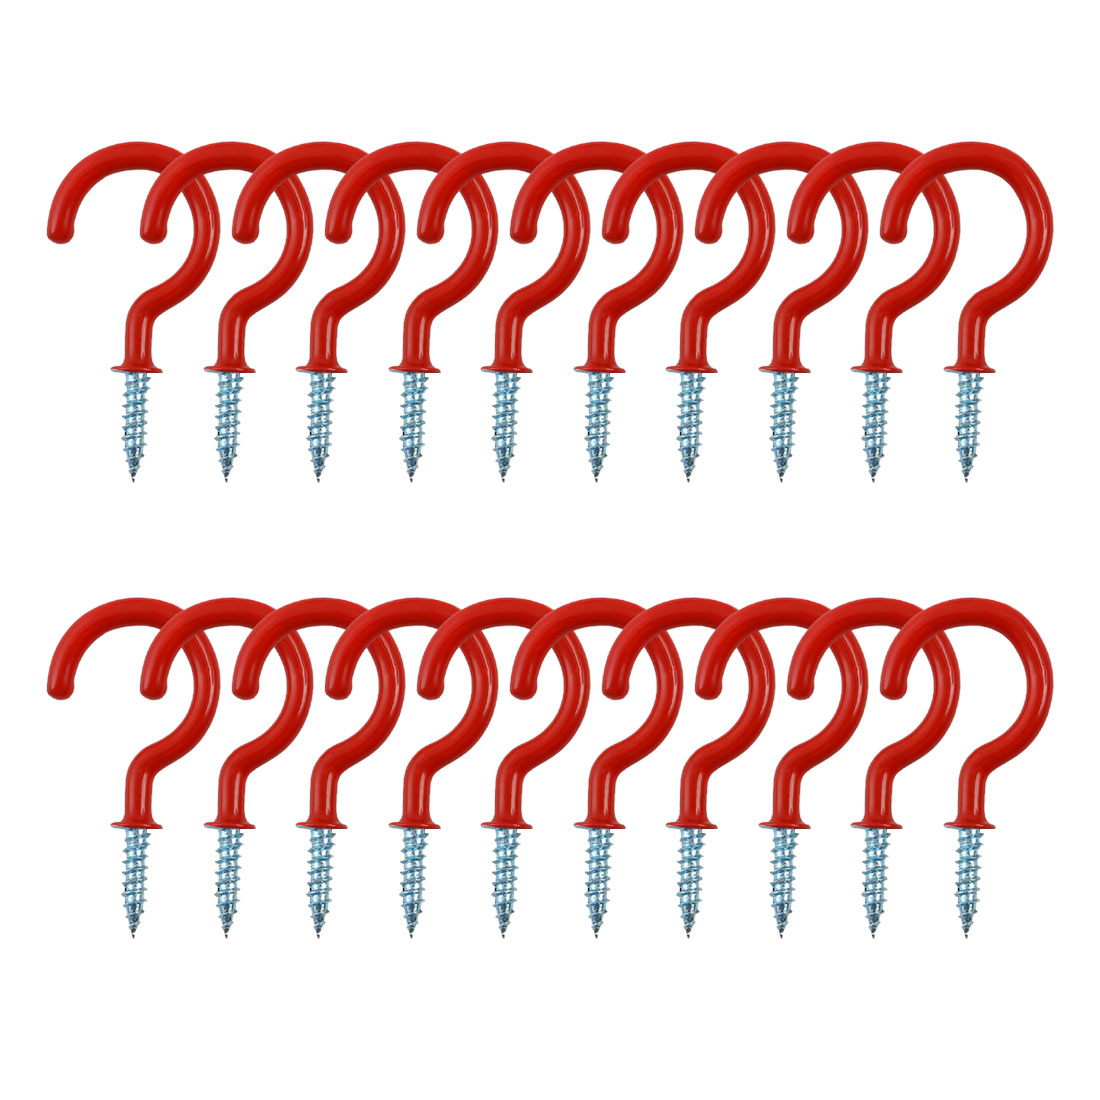 20pcs Cup Ceiling Hooks 1-1/4 Inch Metal with Vinyl Coated Screw in Holder Red